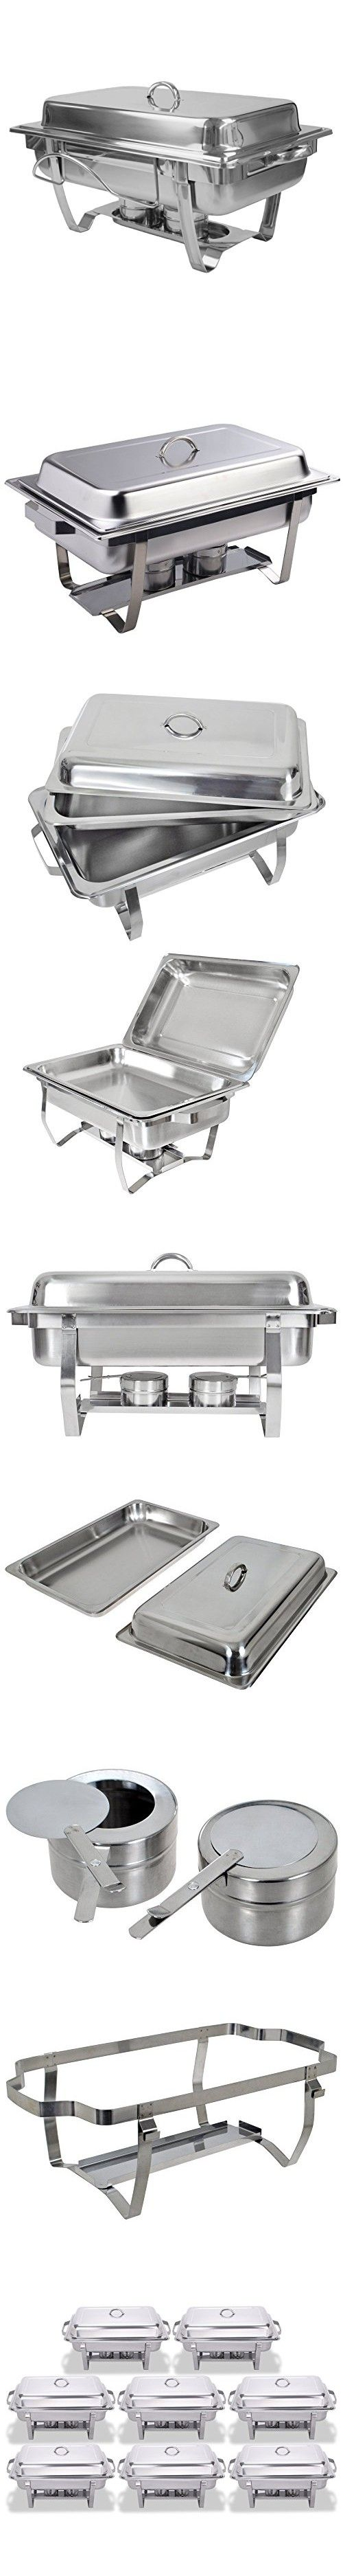 FoodKing Chafing Dish Set of 8 Stainless Steel Chafer Full Size 8 Quart Chafing Dishes for Catering Buffet Warmer Tray Kitchen Party Dining (Set of 8)